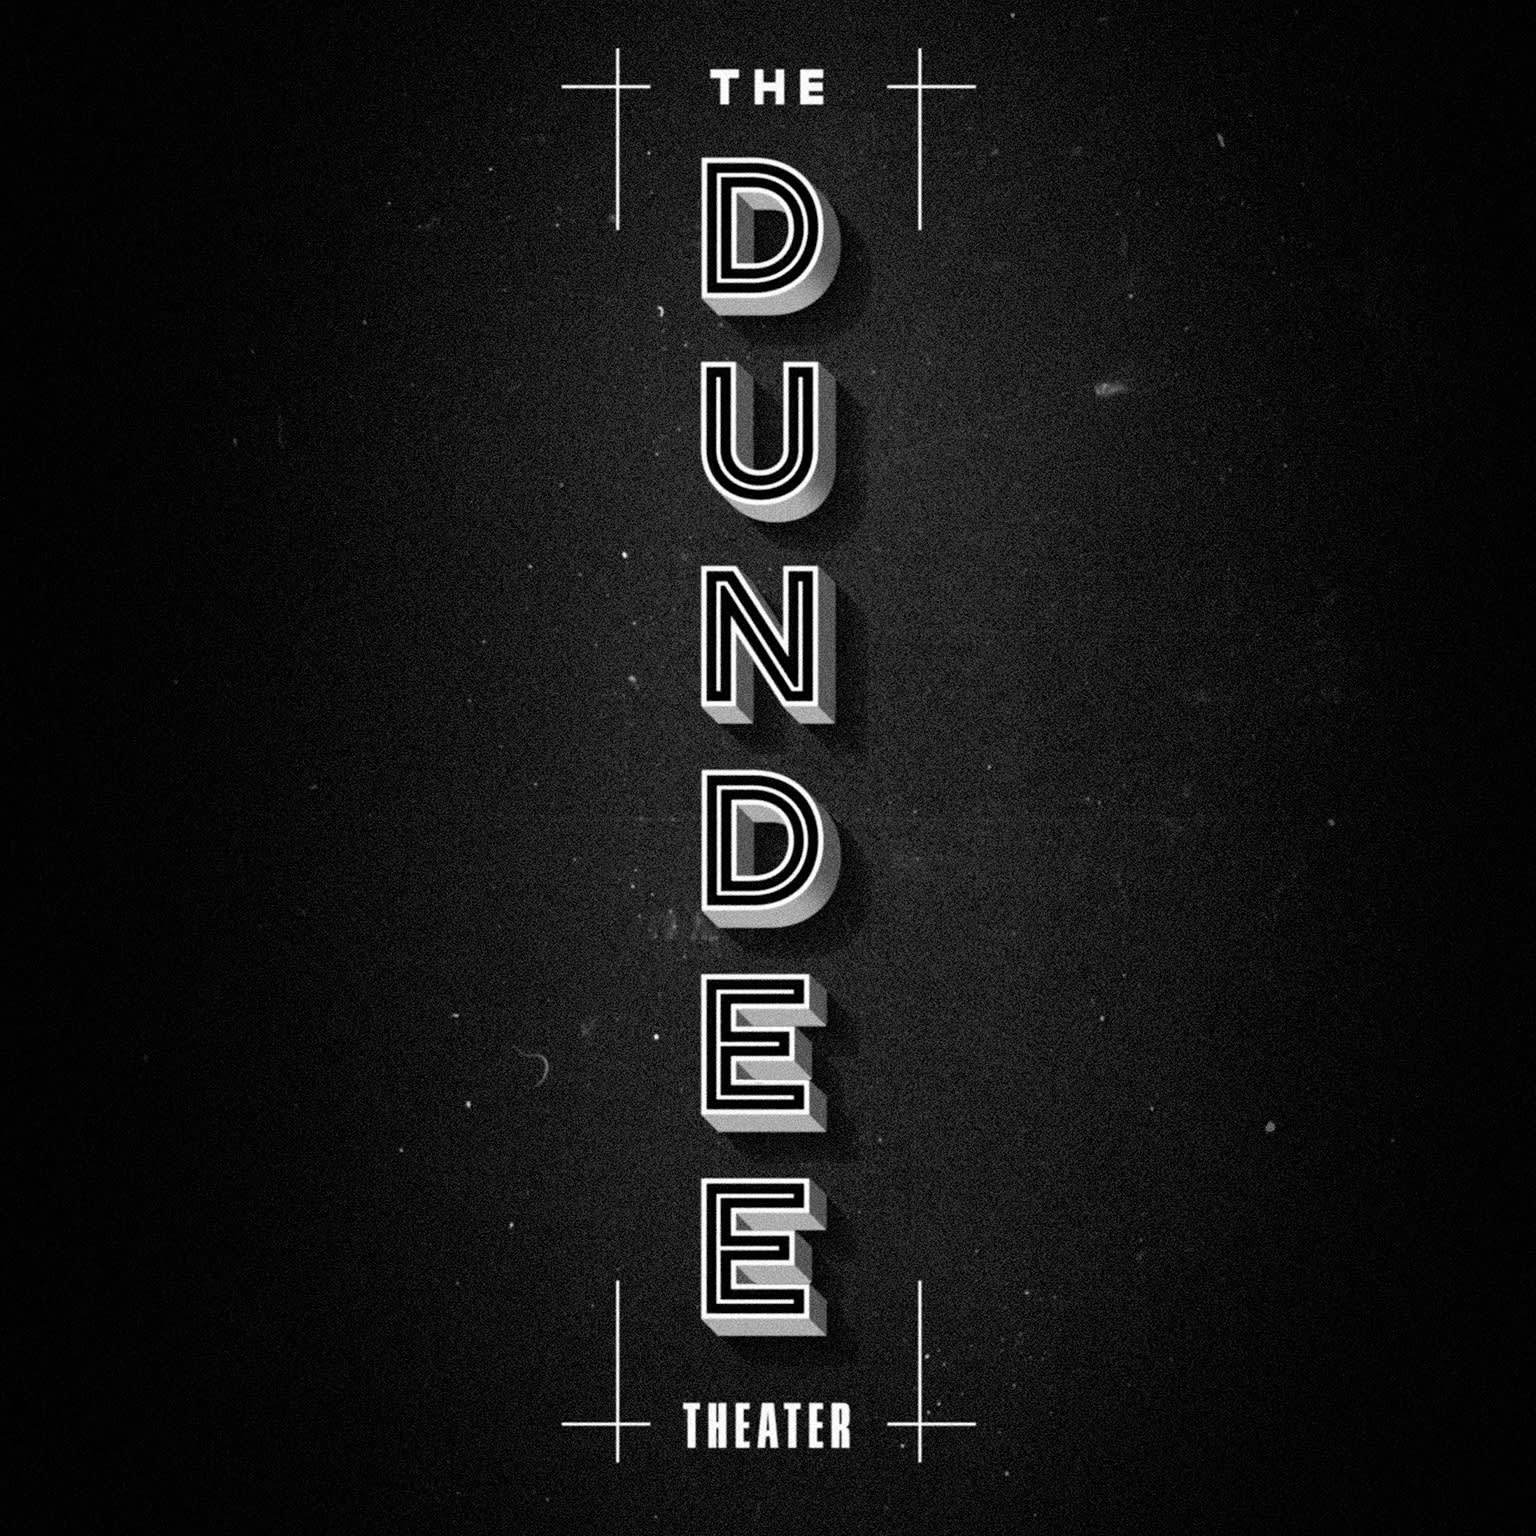 The Dundee Theater